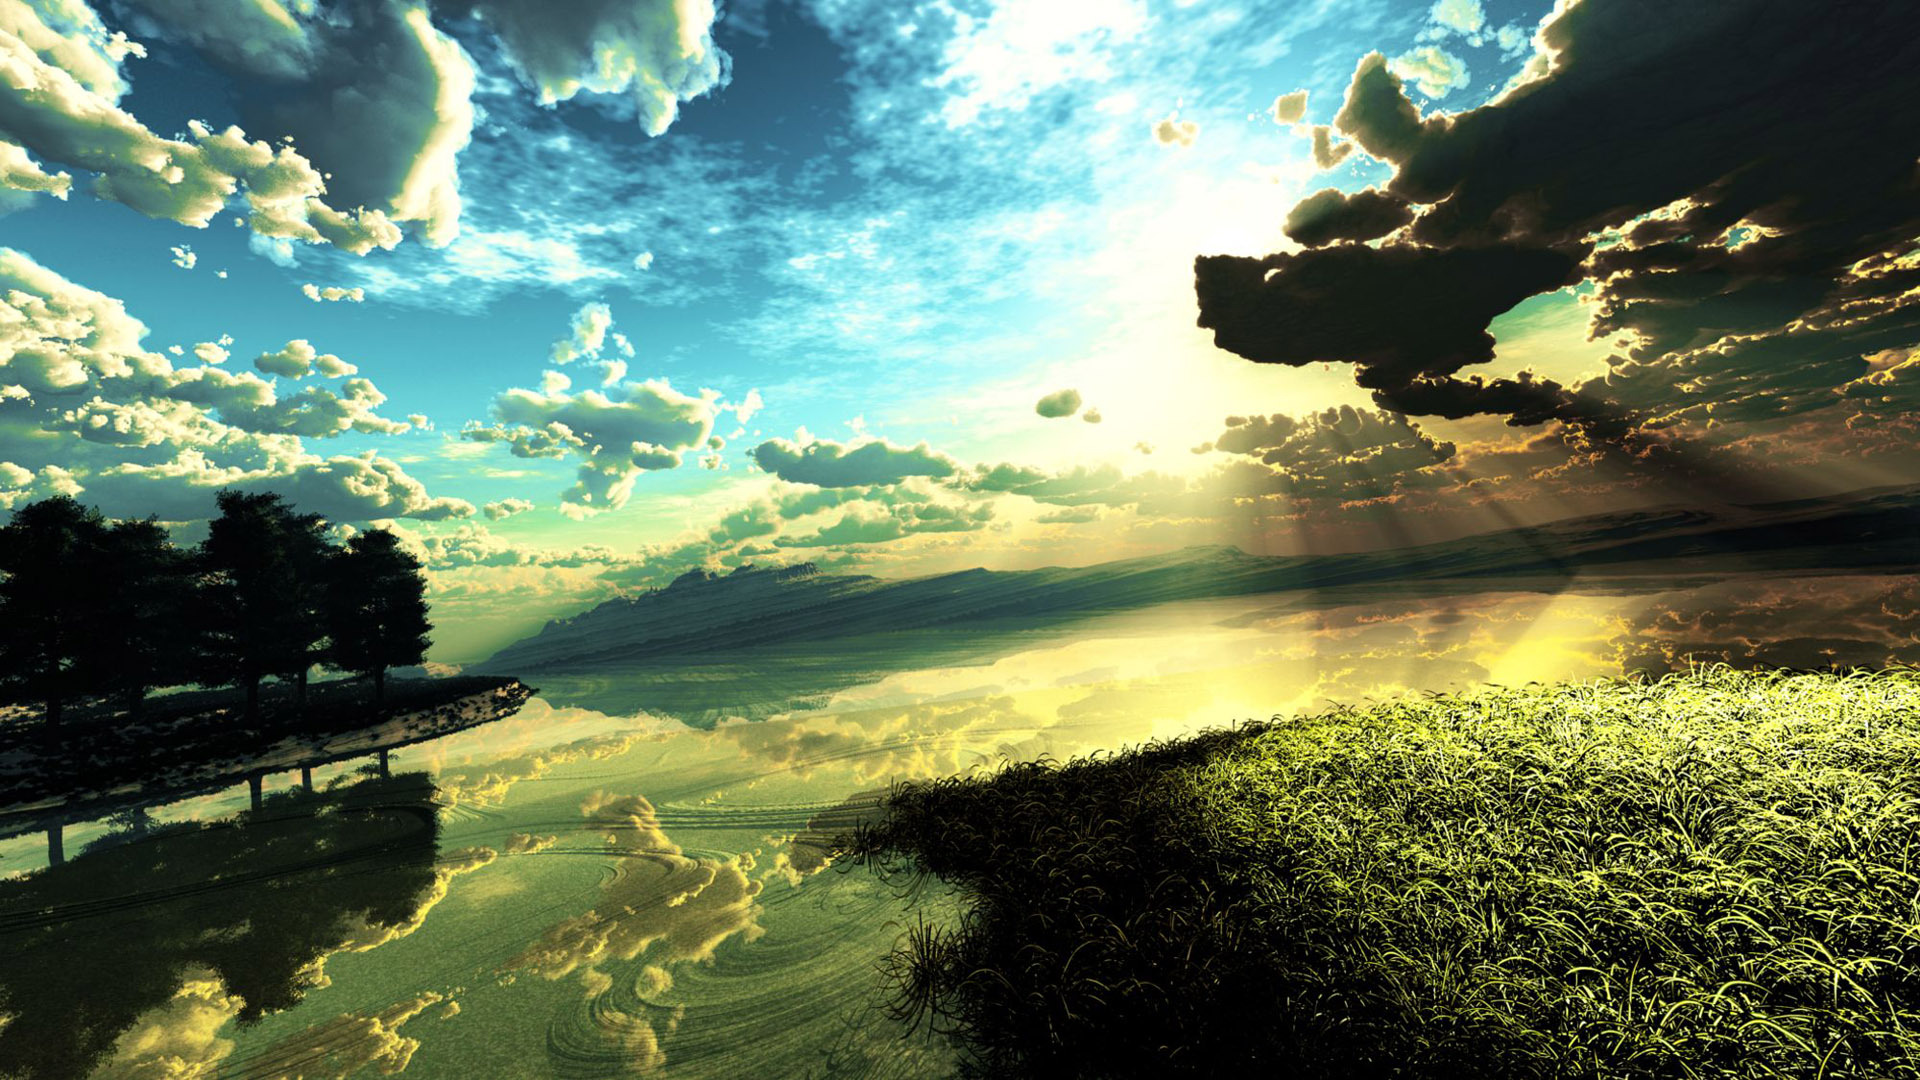 sunny-day-nature-hd-wallpaper-1920x1080-10231